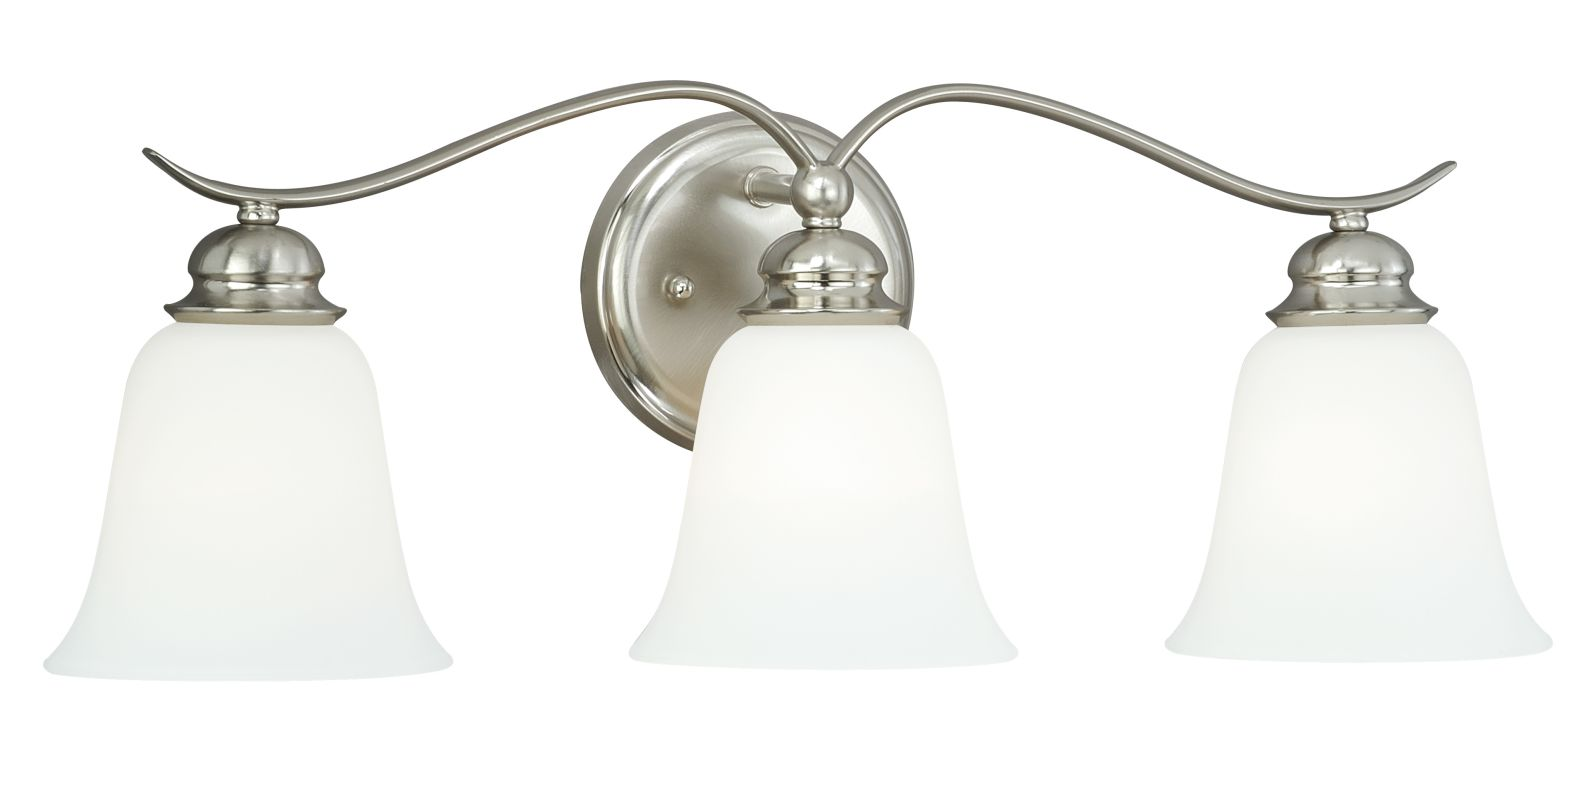 Vaxcel Lighting W0091 Darby 3 Light Bathroom Vanity Light - 23.25